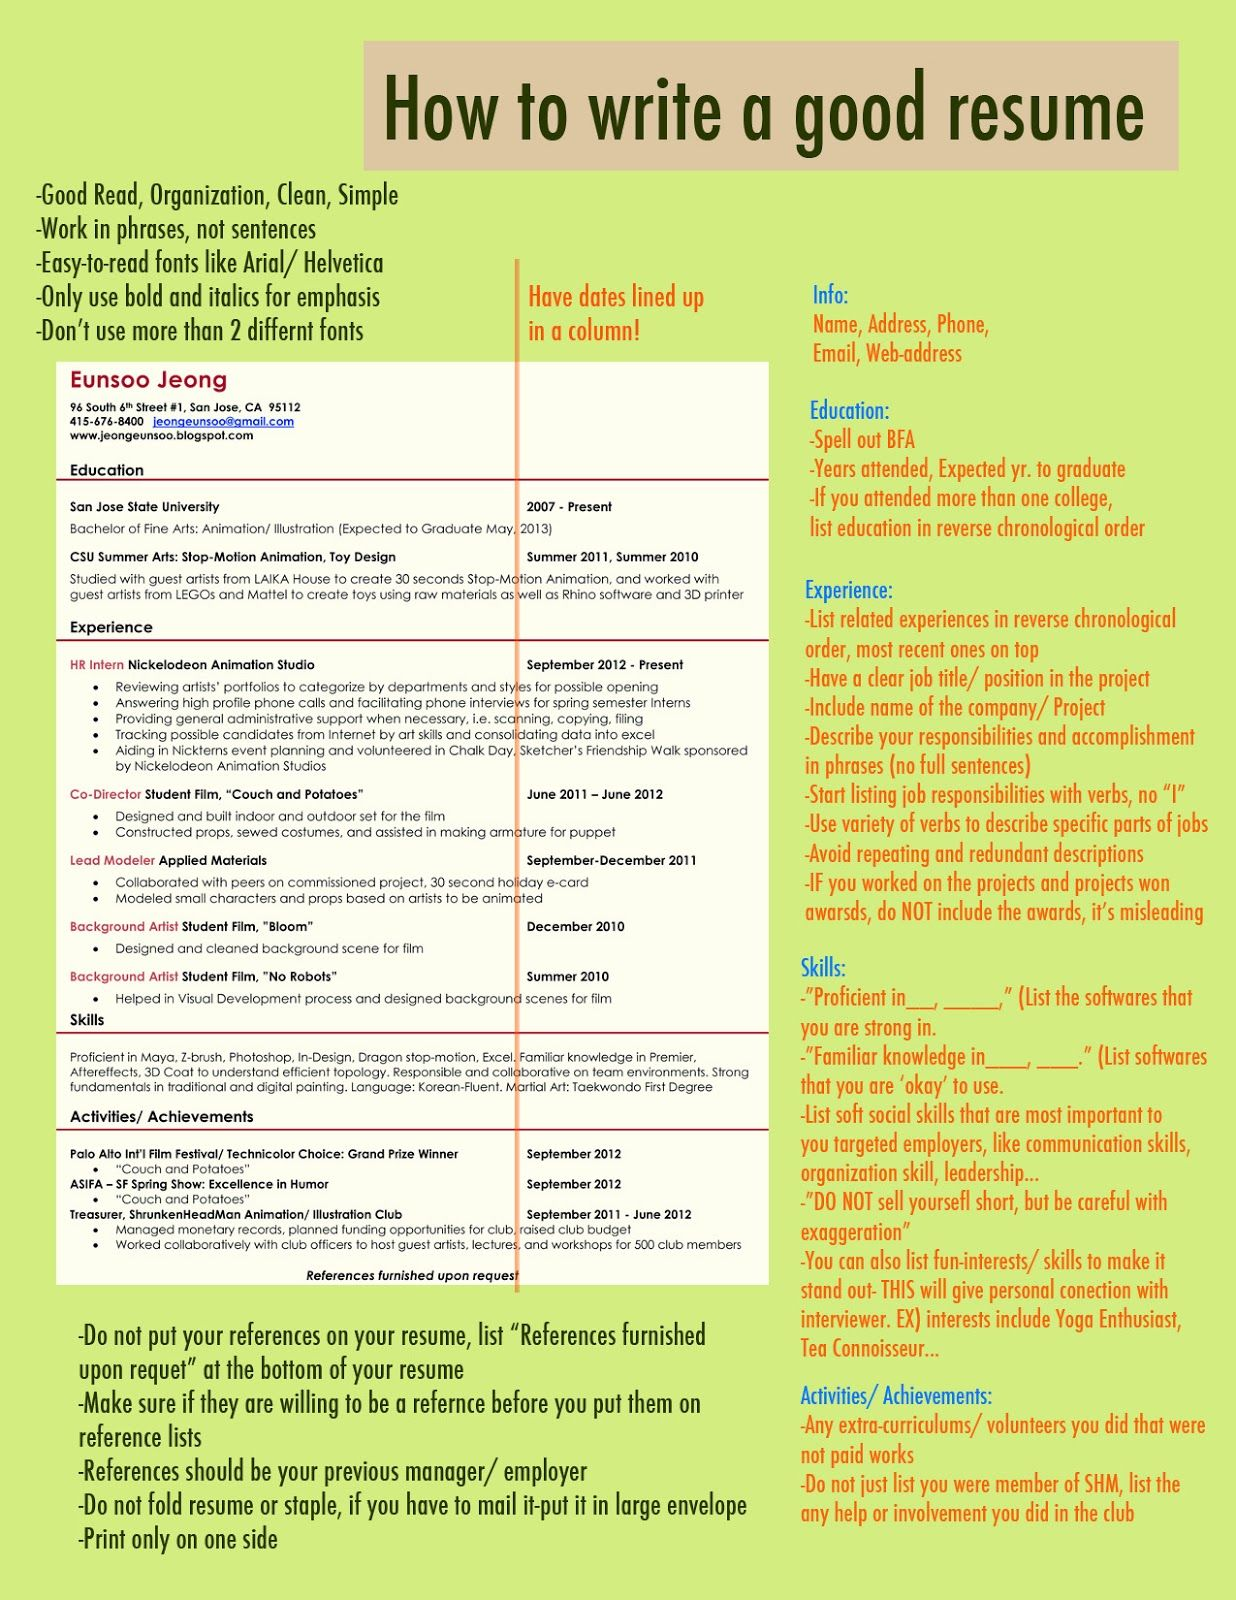 Classy Design Writing A Good Resume 9 Examples Of Good Resumes  How To Make A Really Good Resume